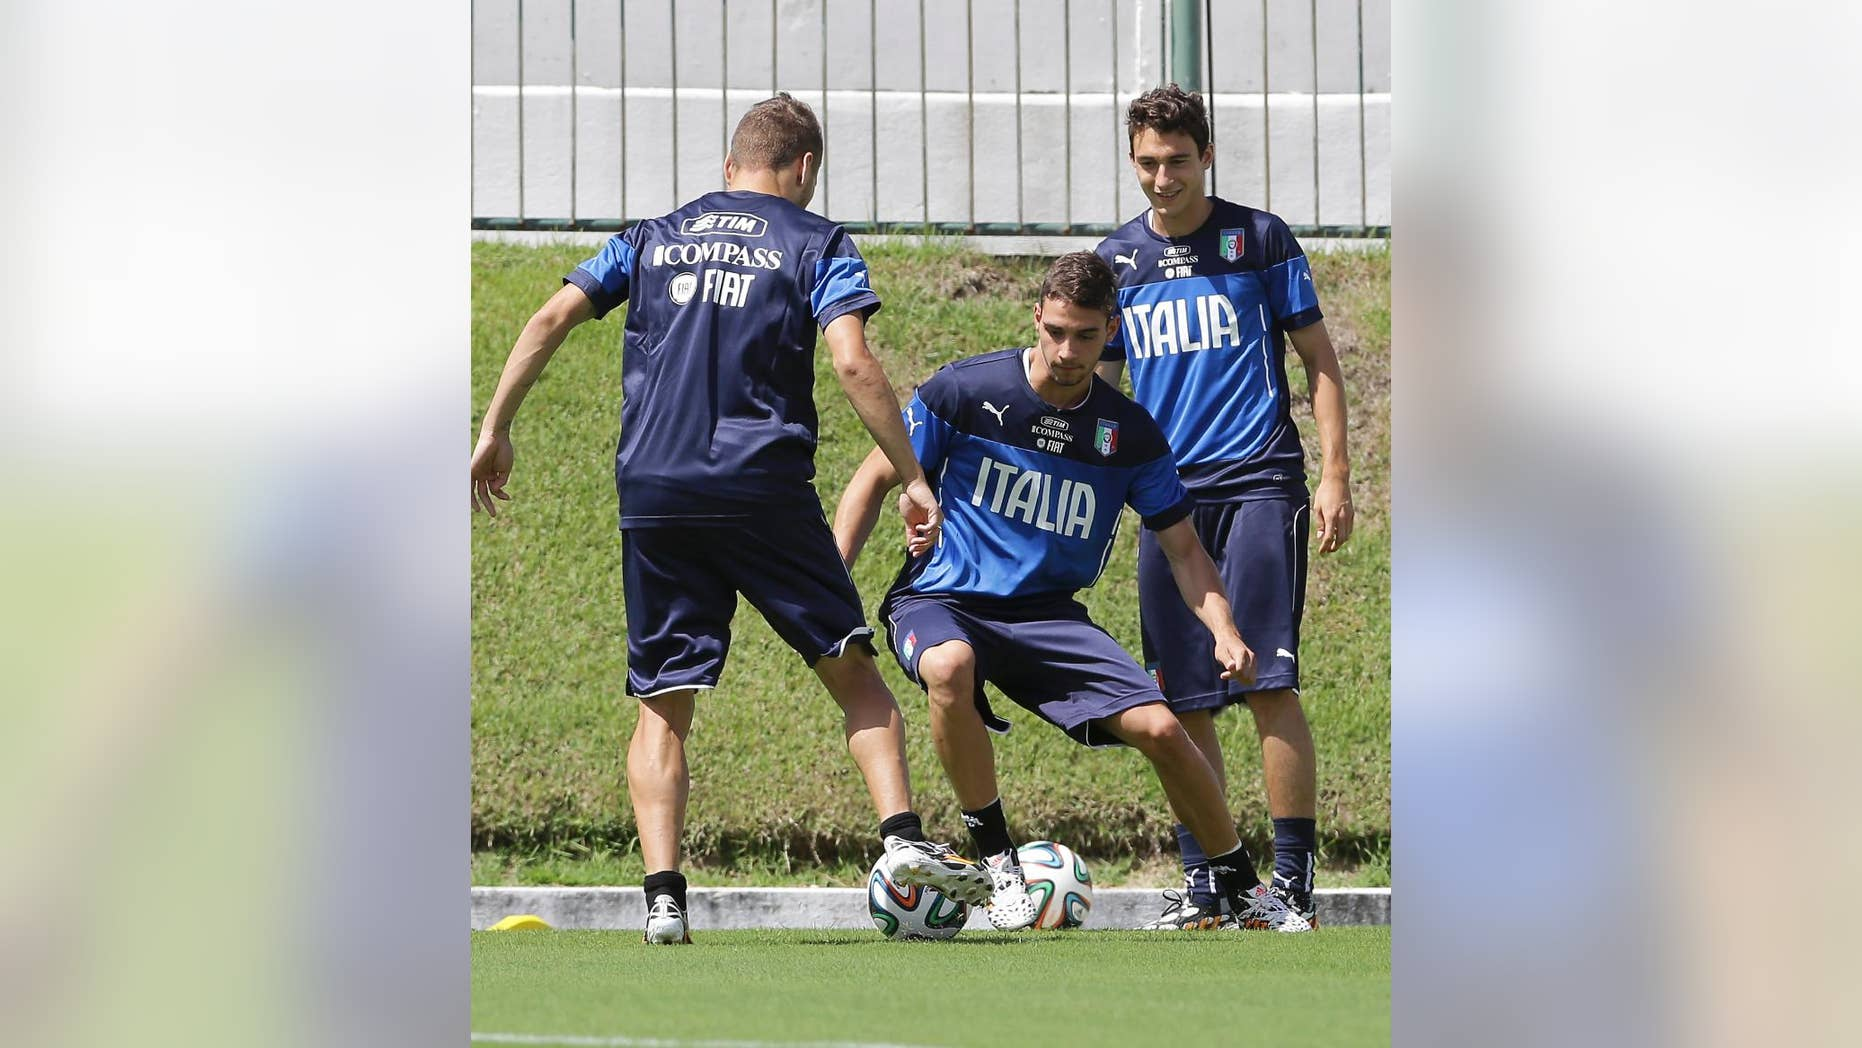 Italy's Mattia De Sciglio, center, trains with his teammates Ciro Immobile, left, and Matteo Darmian at the Maria Lamas Farache stadium in Natal, Brazil, Sunday, June 22, 2014. Italy plays in group D of the Brazil 2014 soccer World Cup. (AP Photo/Antonio Calanni)